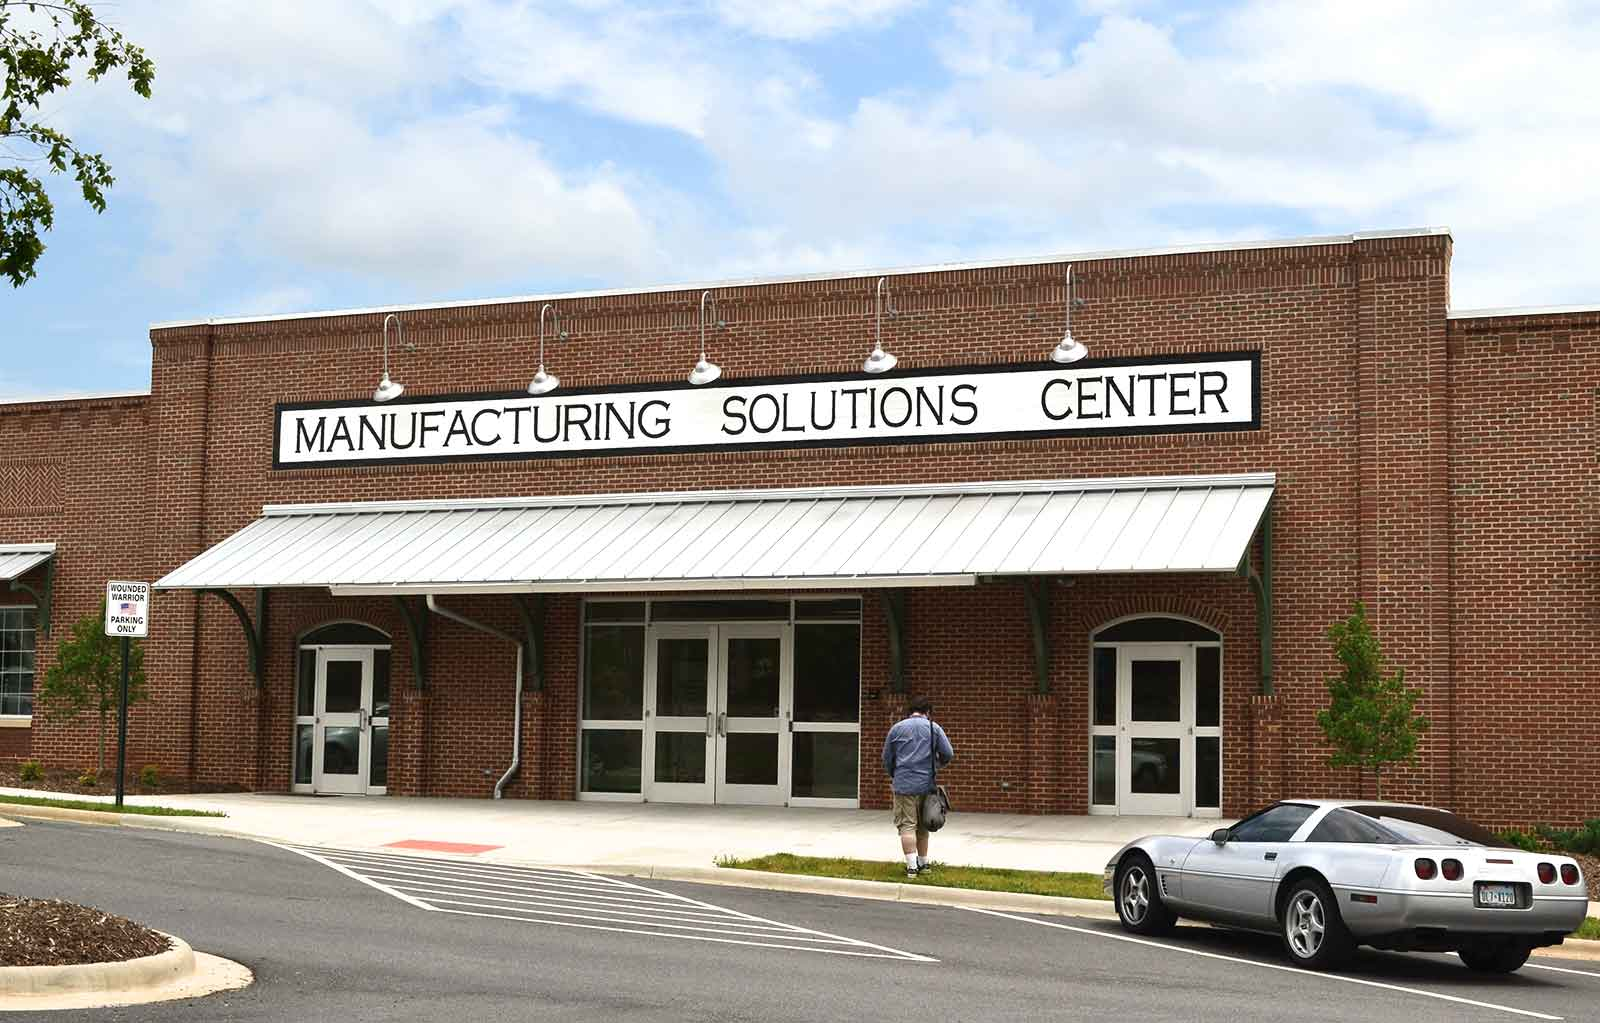 What is the Manufacturing Solutions Center?